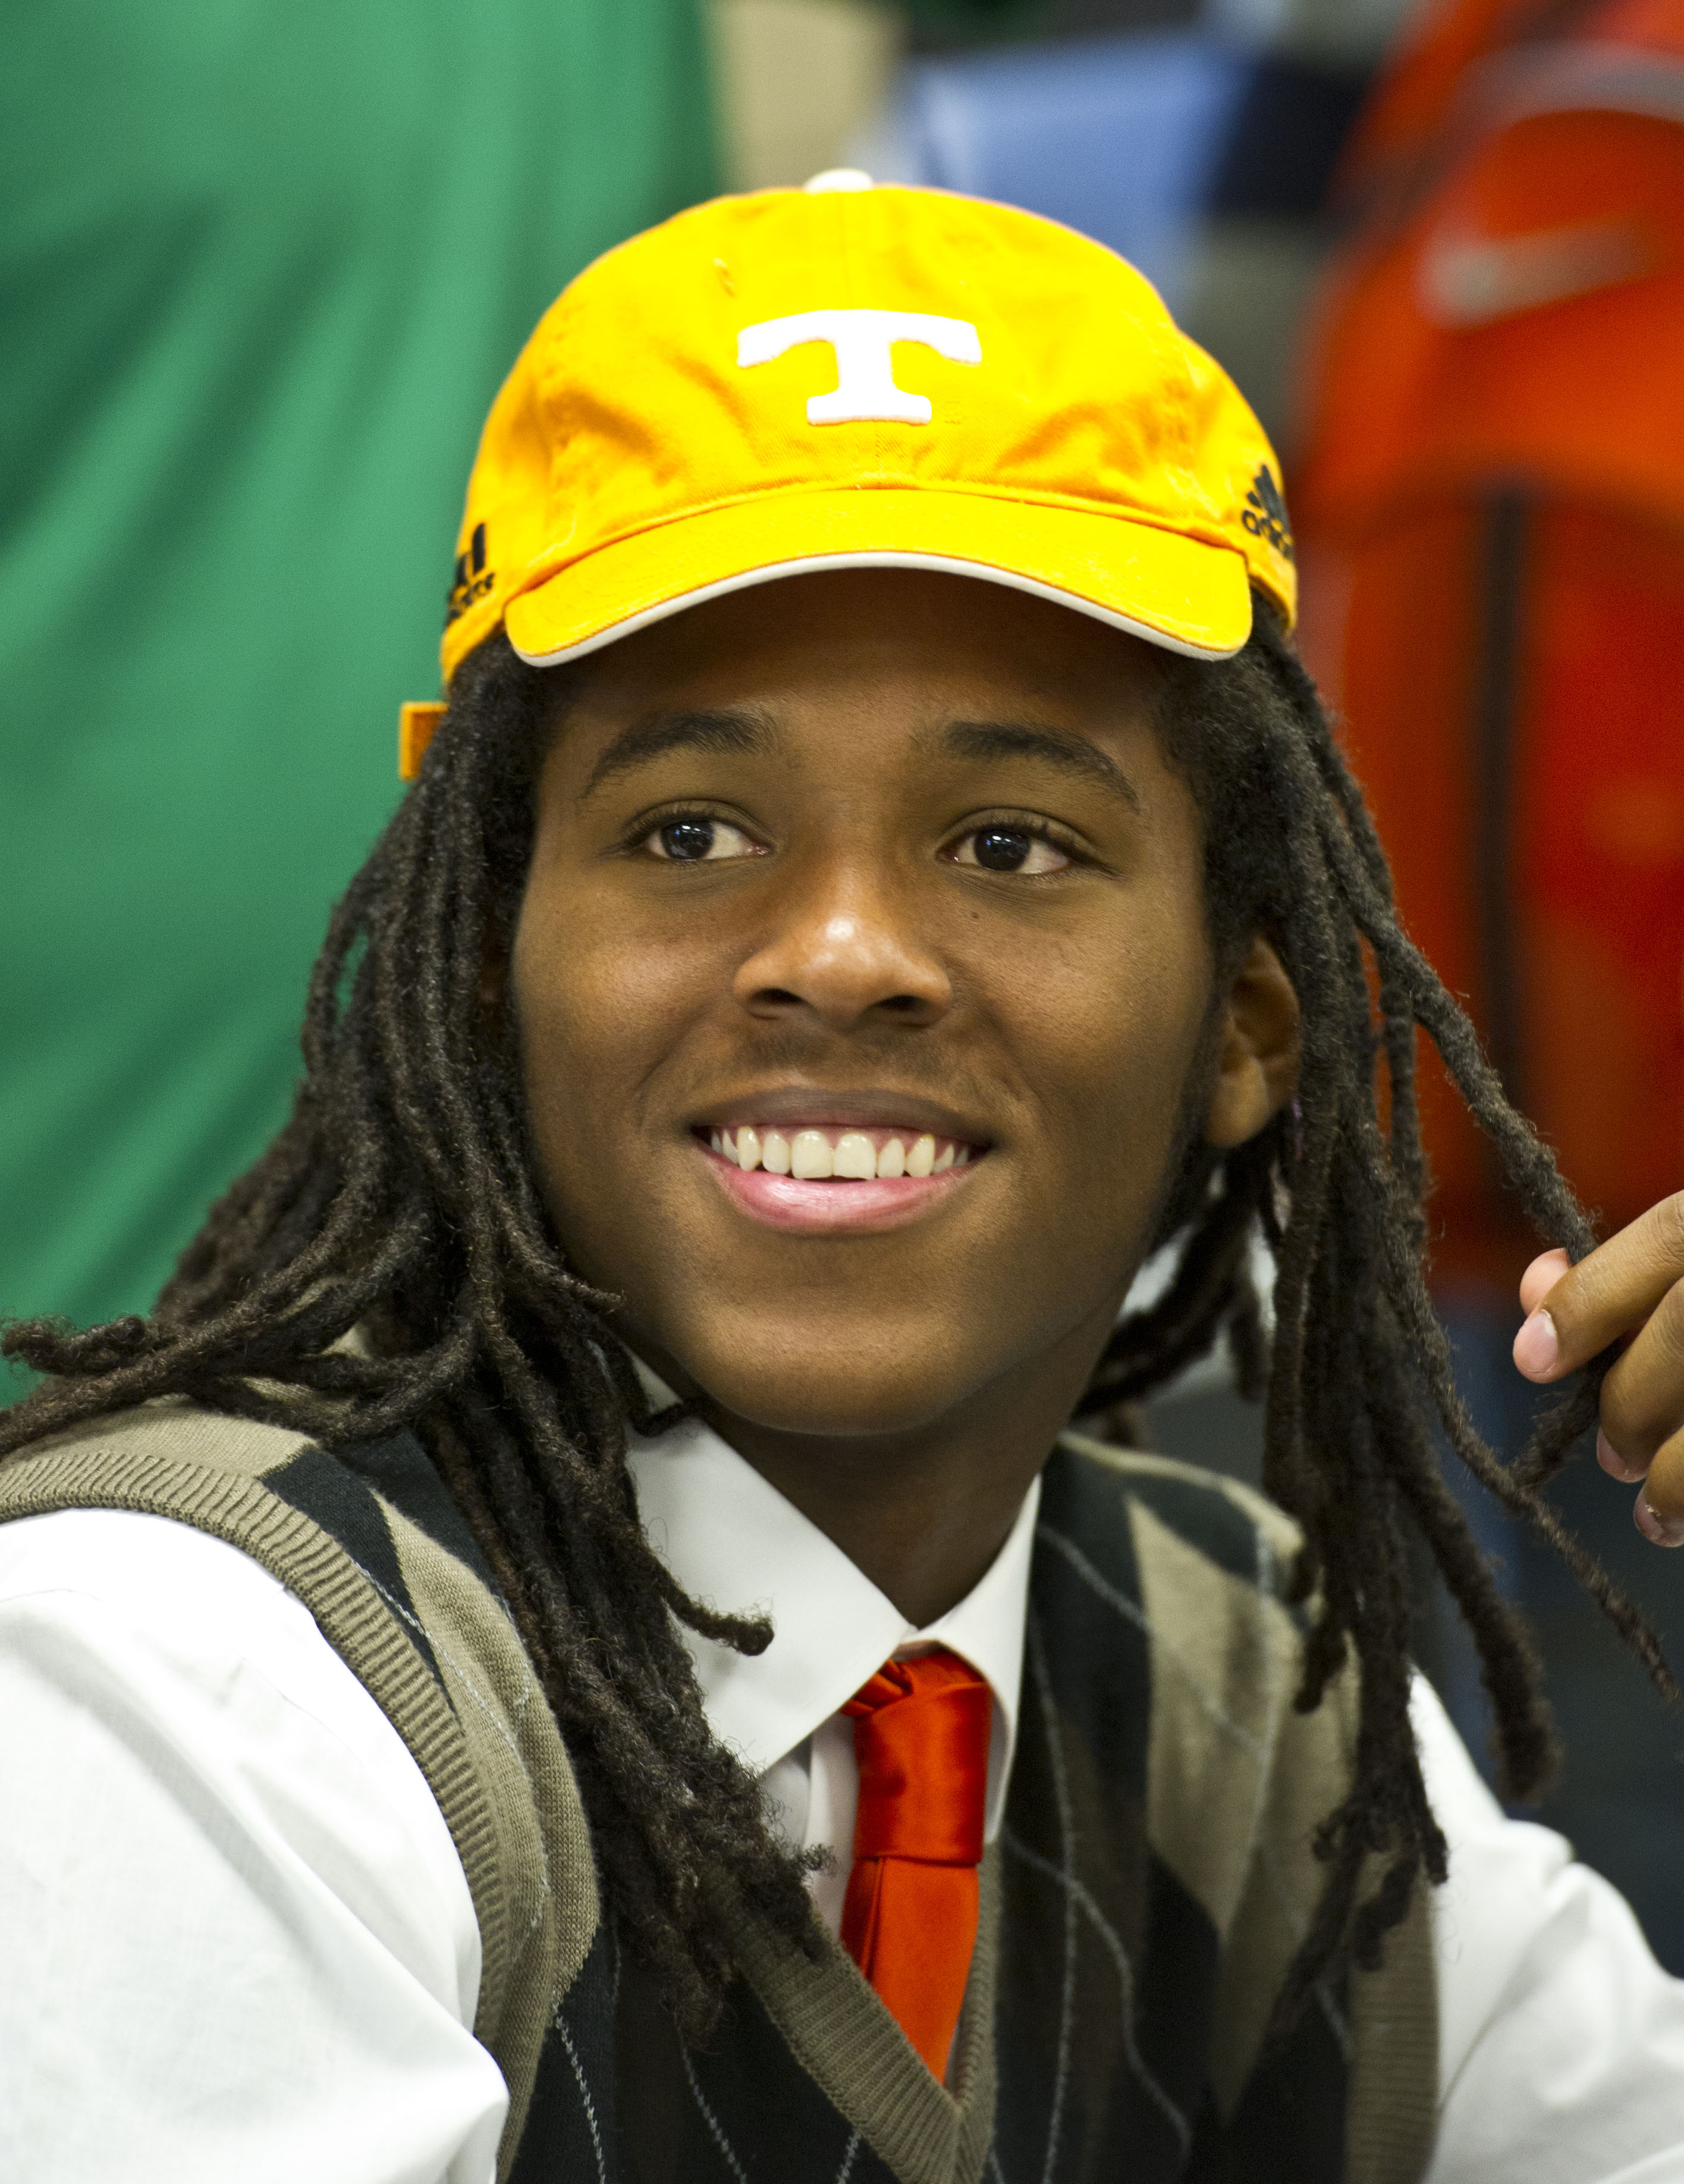 Warner Robins football standout Marquez Callaway dons a Tennessee cap after signing a letter of intent to attend the University of Tennessee during national signing day, Wednesday, Feb. 3, 2016, in Warner Robbins, Ga. (Woody Marshall/The Macon Telegraph v